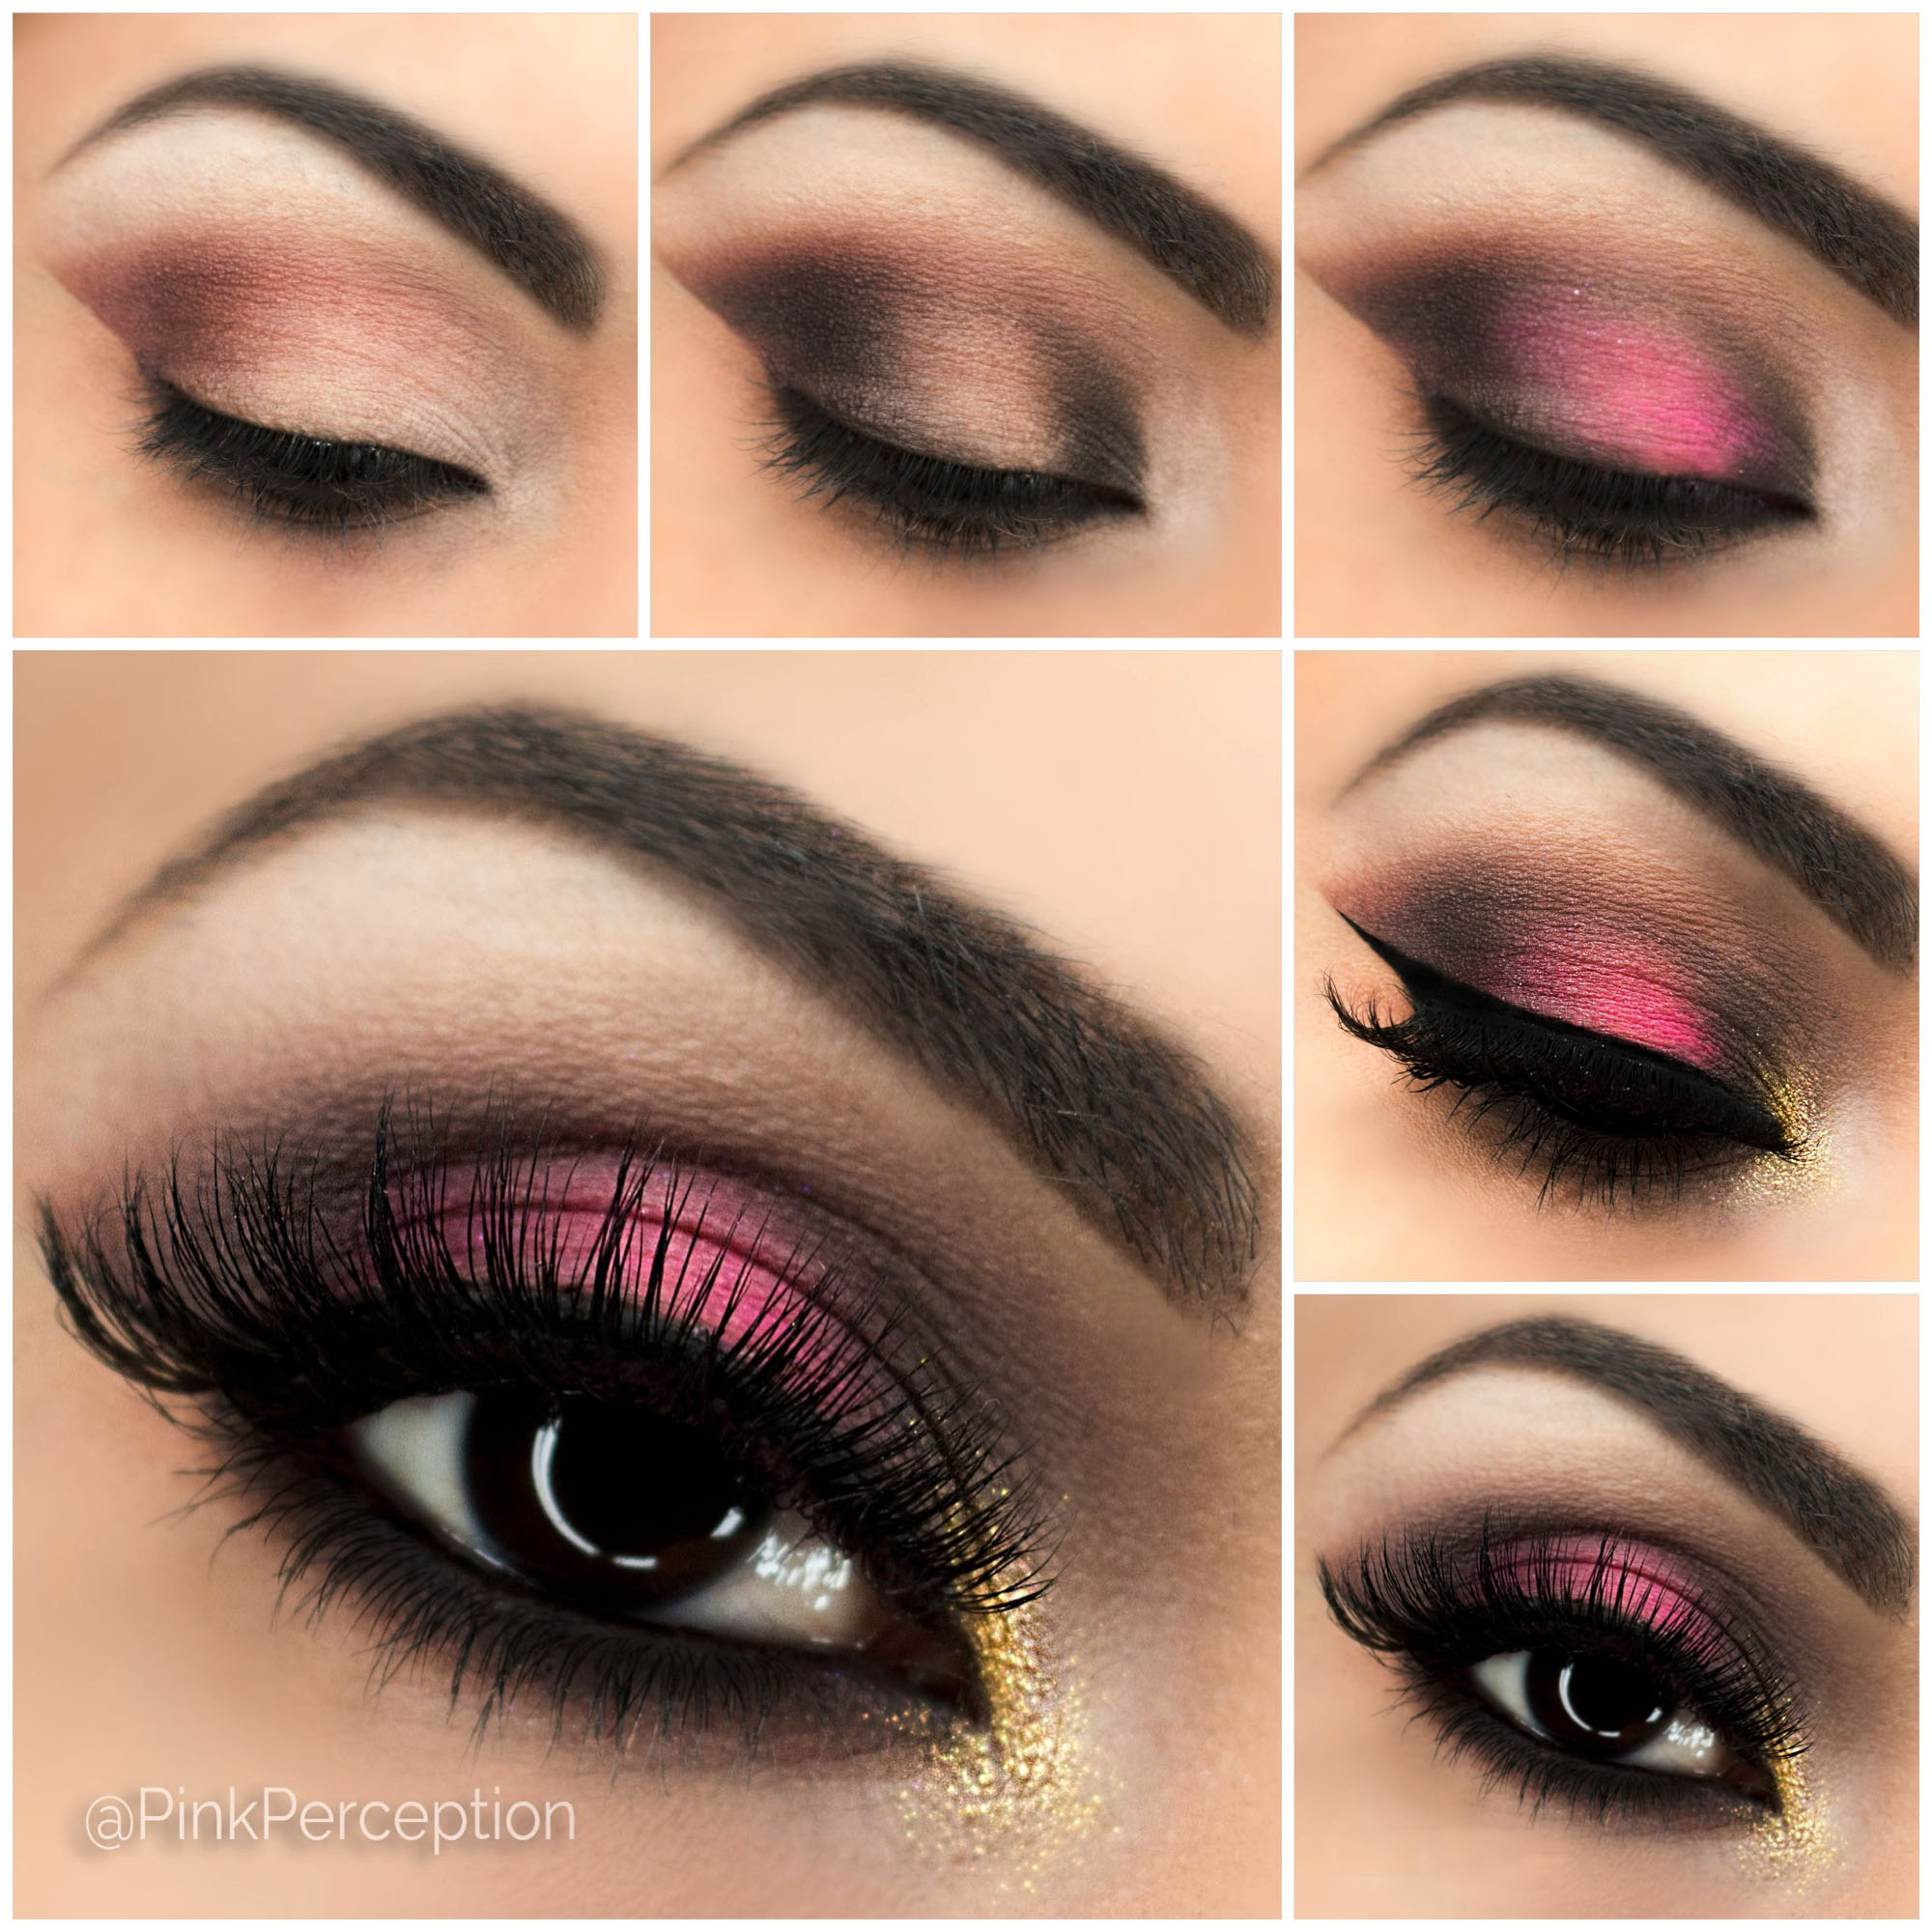 15 Smokey Eyeshadow Ideas to Copy - Beauty Tips, Celebrity ...